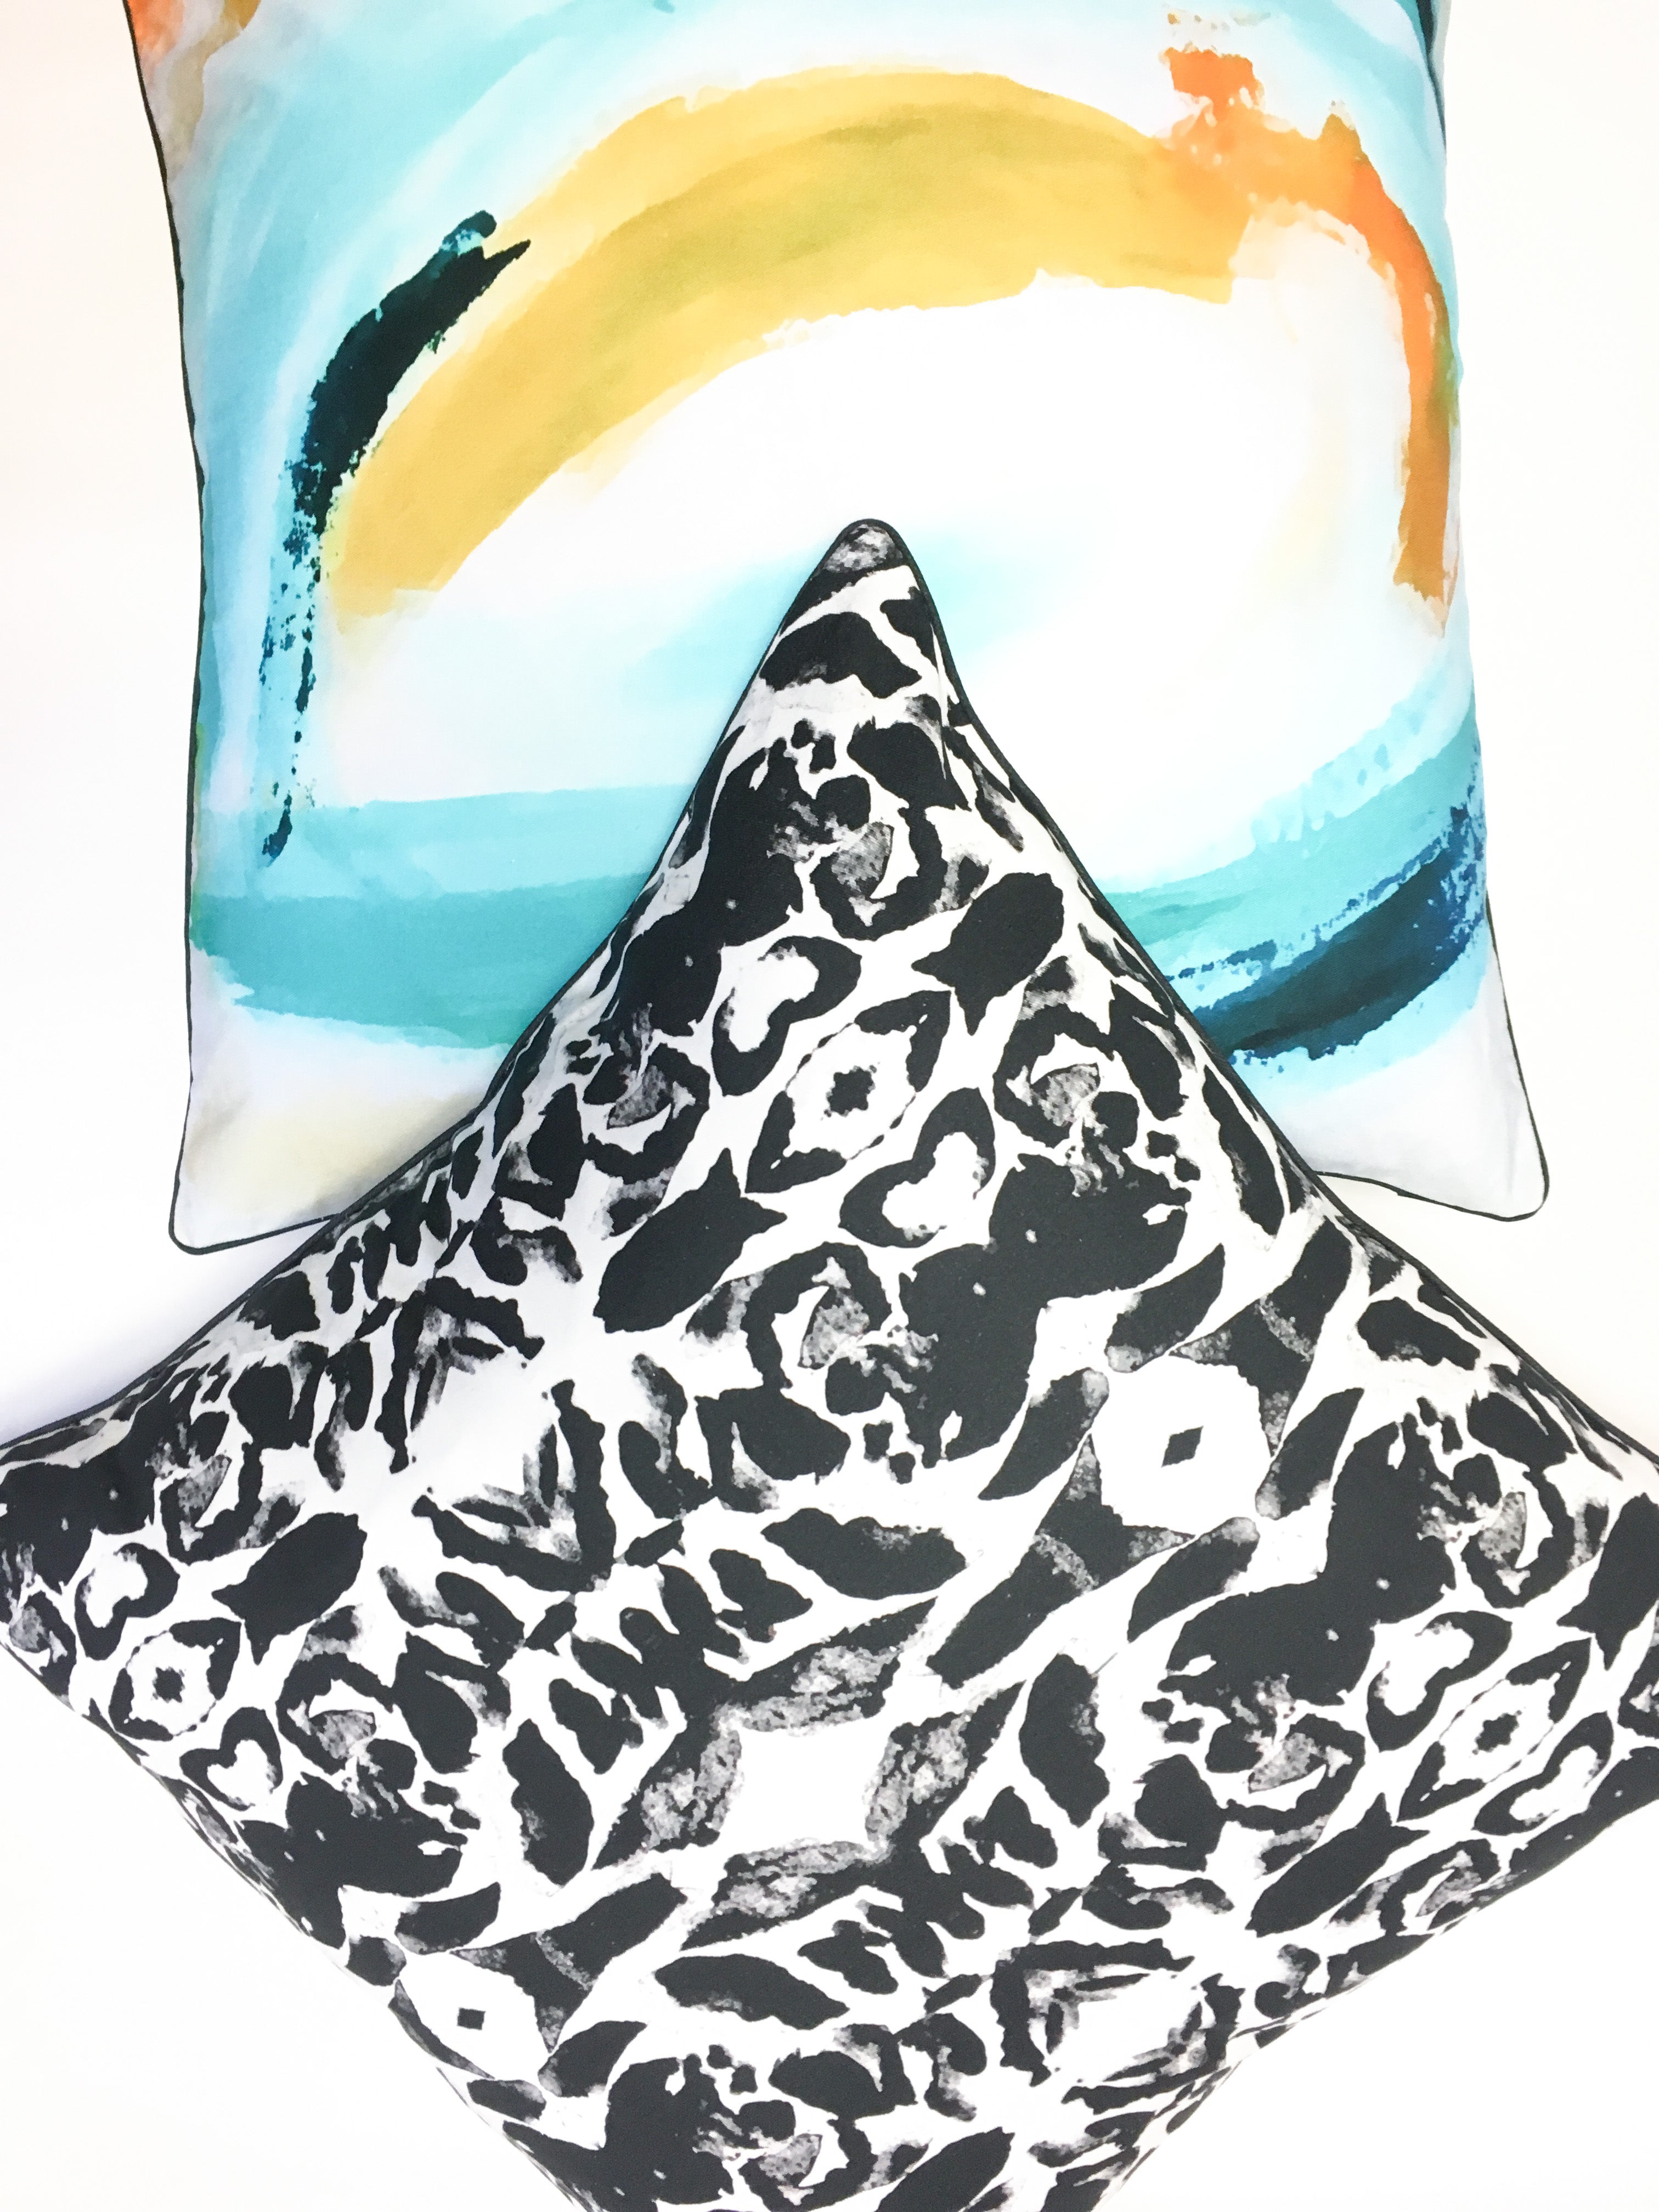 Pillow Cover - Iris - The Blush Label - Vibrant Resort Wear & Home Decor